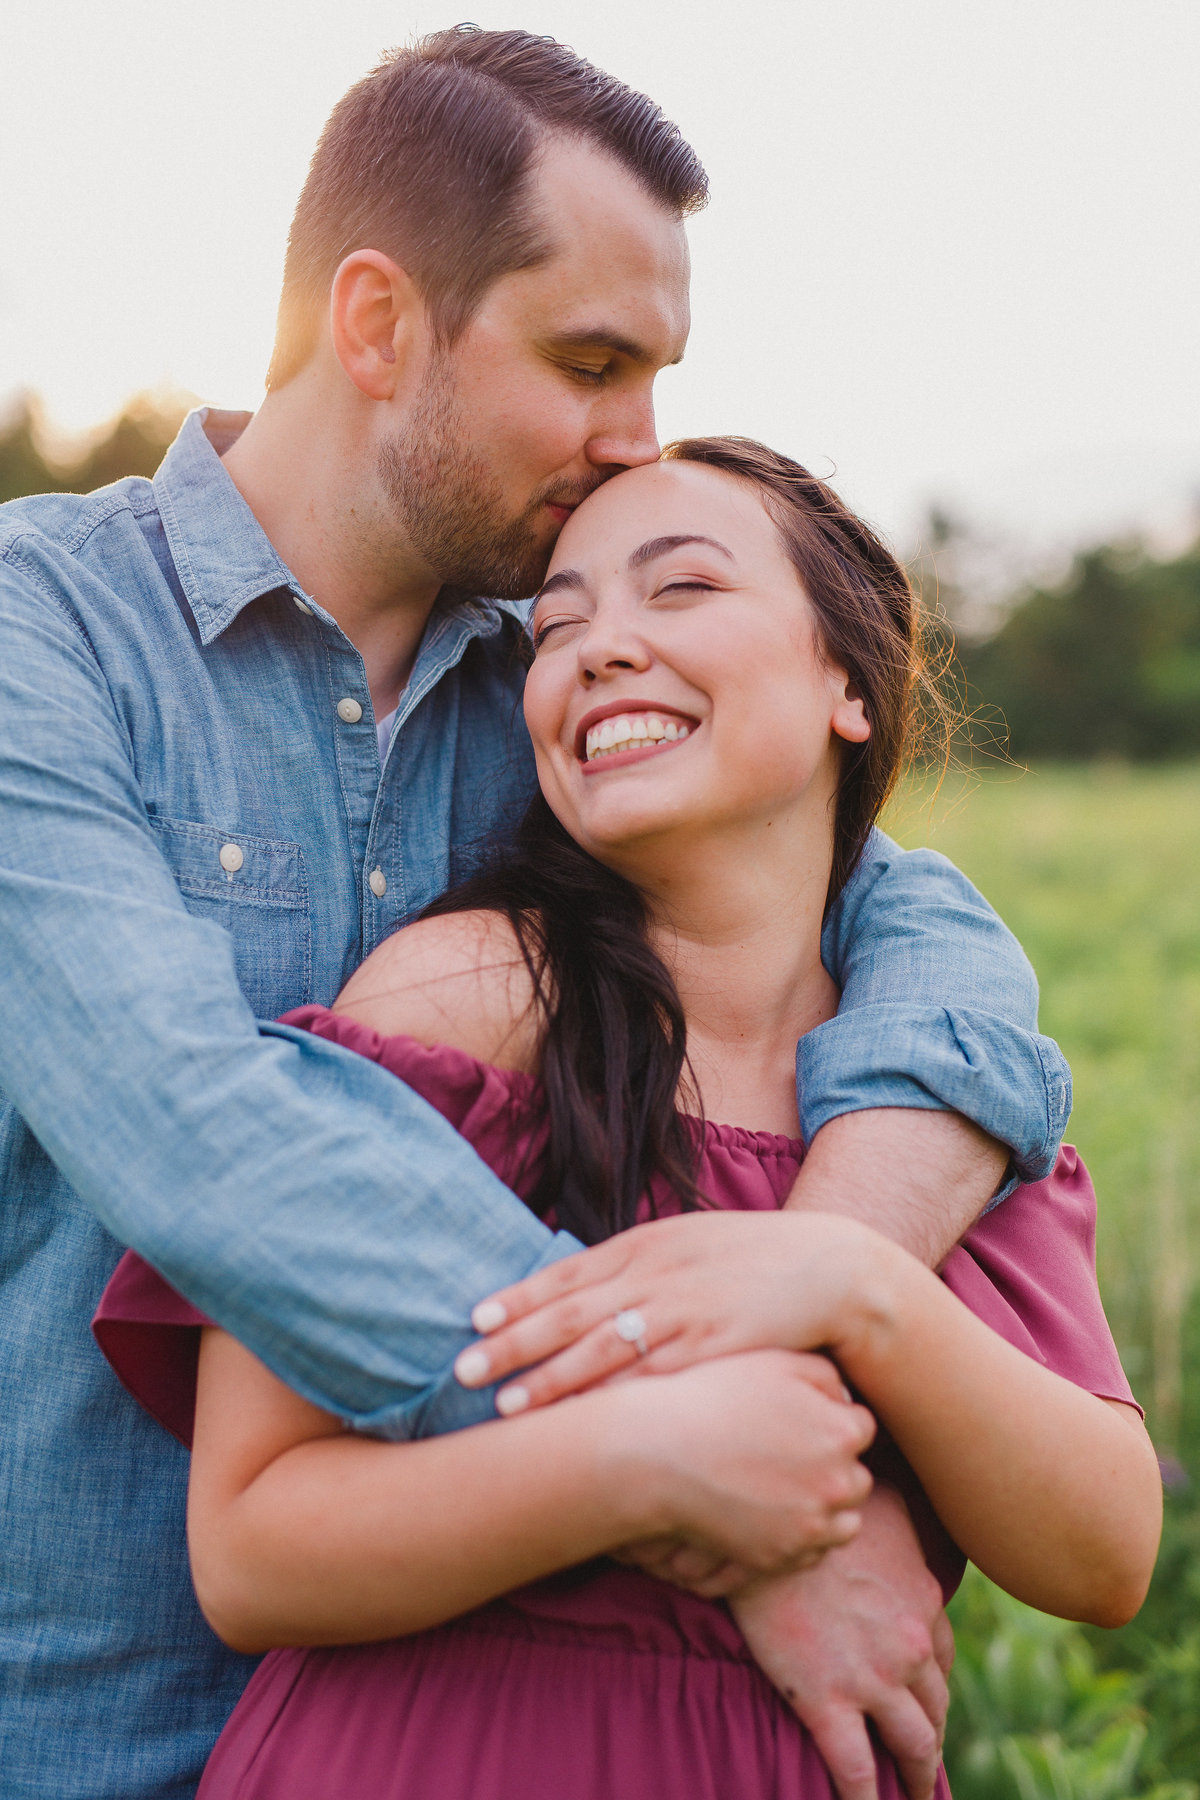 StephenAndMichelleEngaged_070617_WeeThreeSparrowsPhotography_168